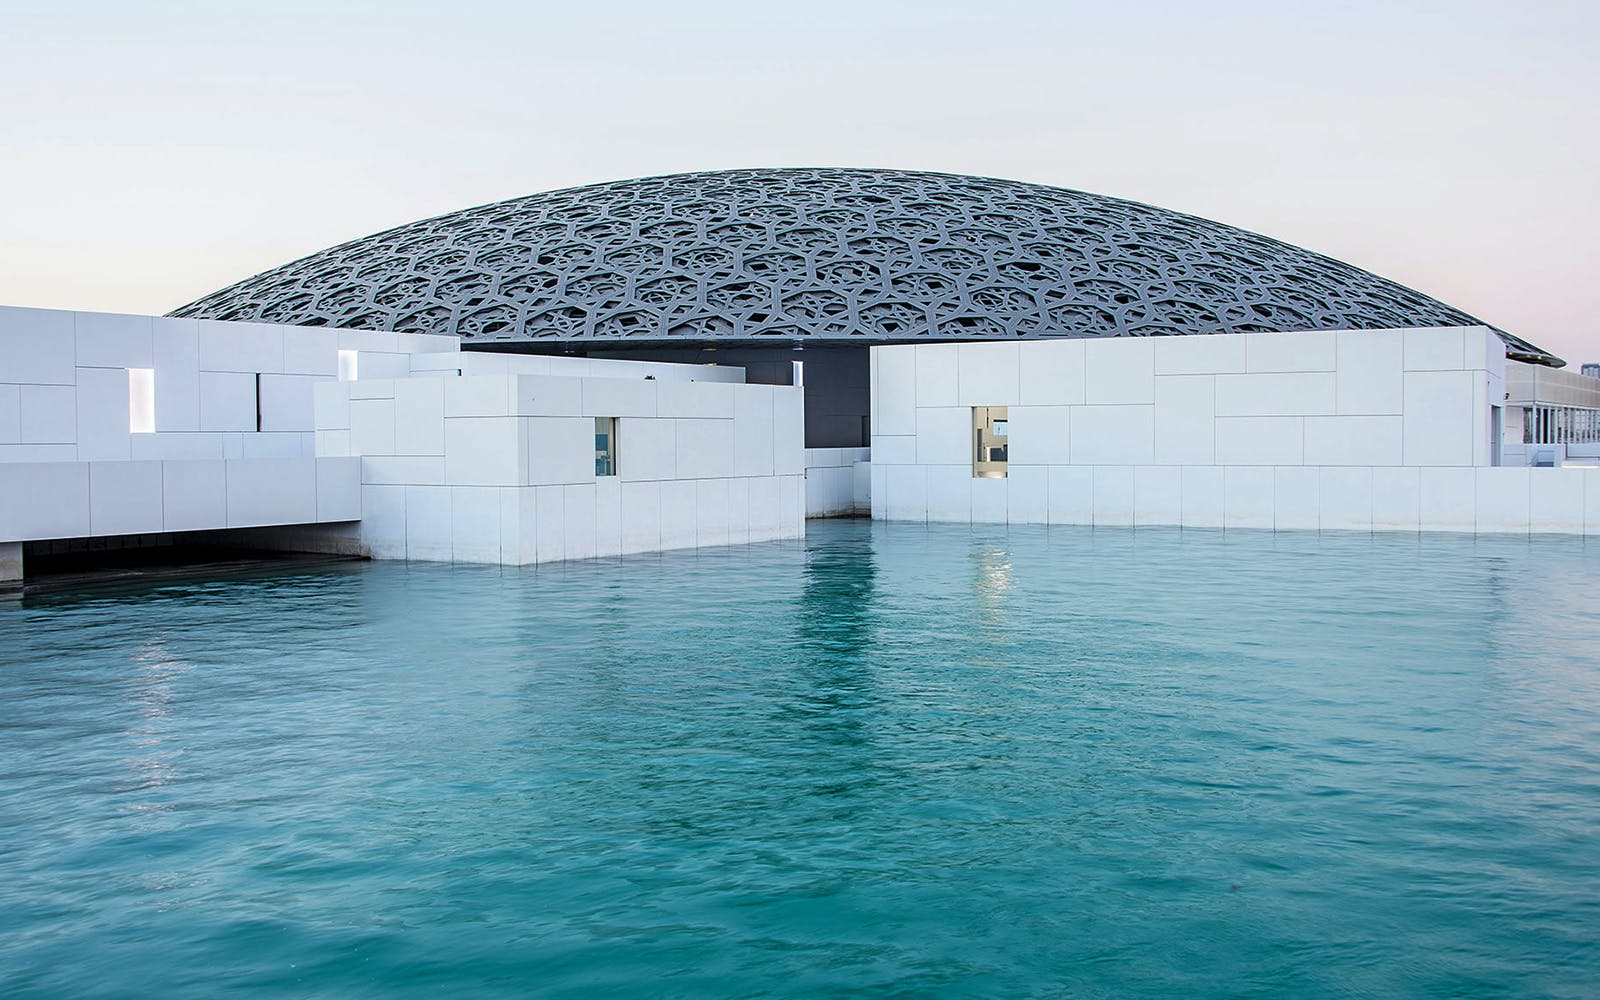 louvre abu dhabi - skip the line tickets-10